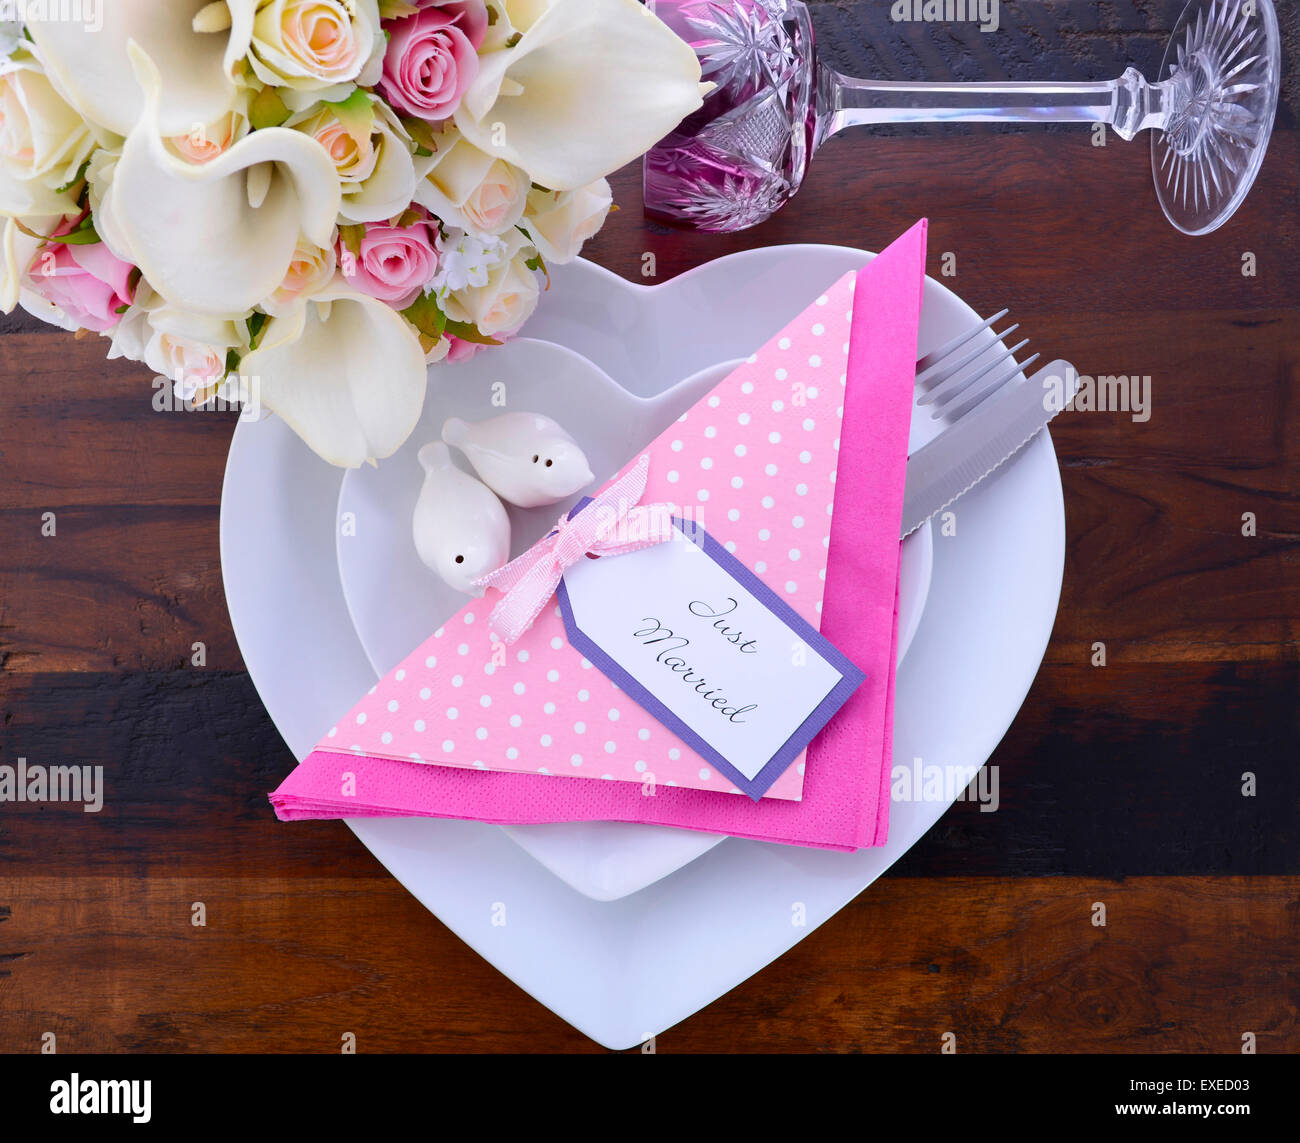 Pink Theme Wedding Table Place Setting with white heart shape plates ...